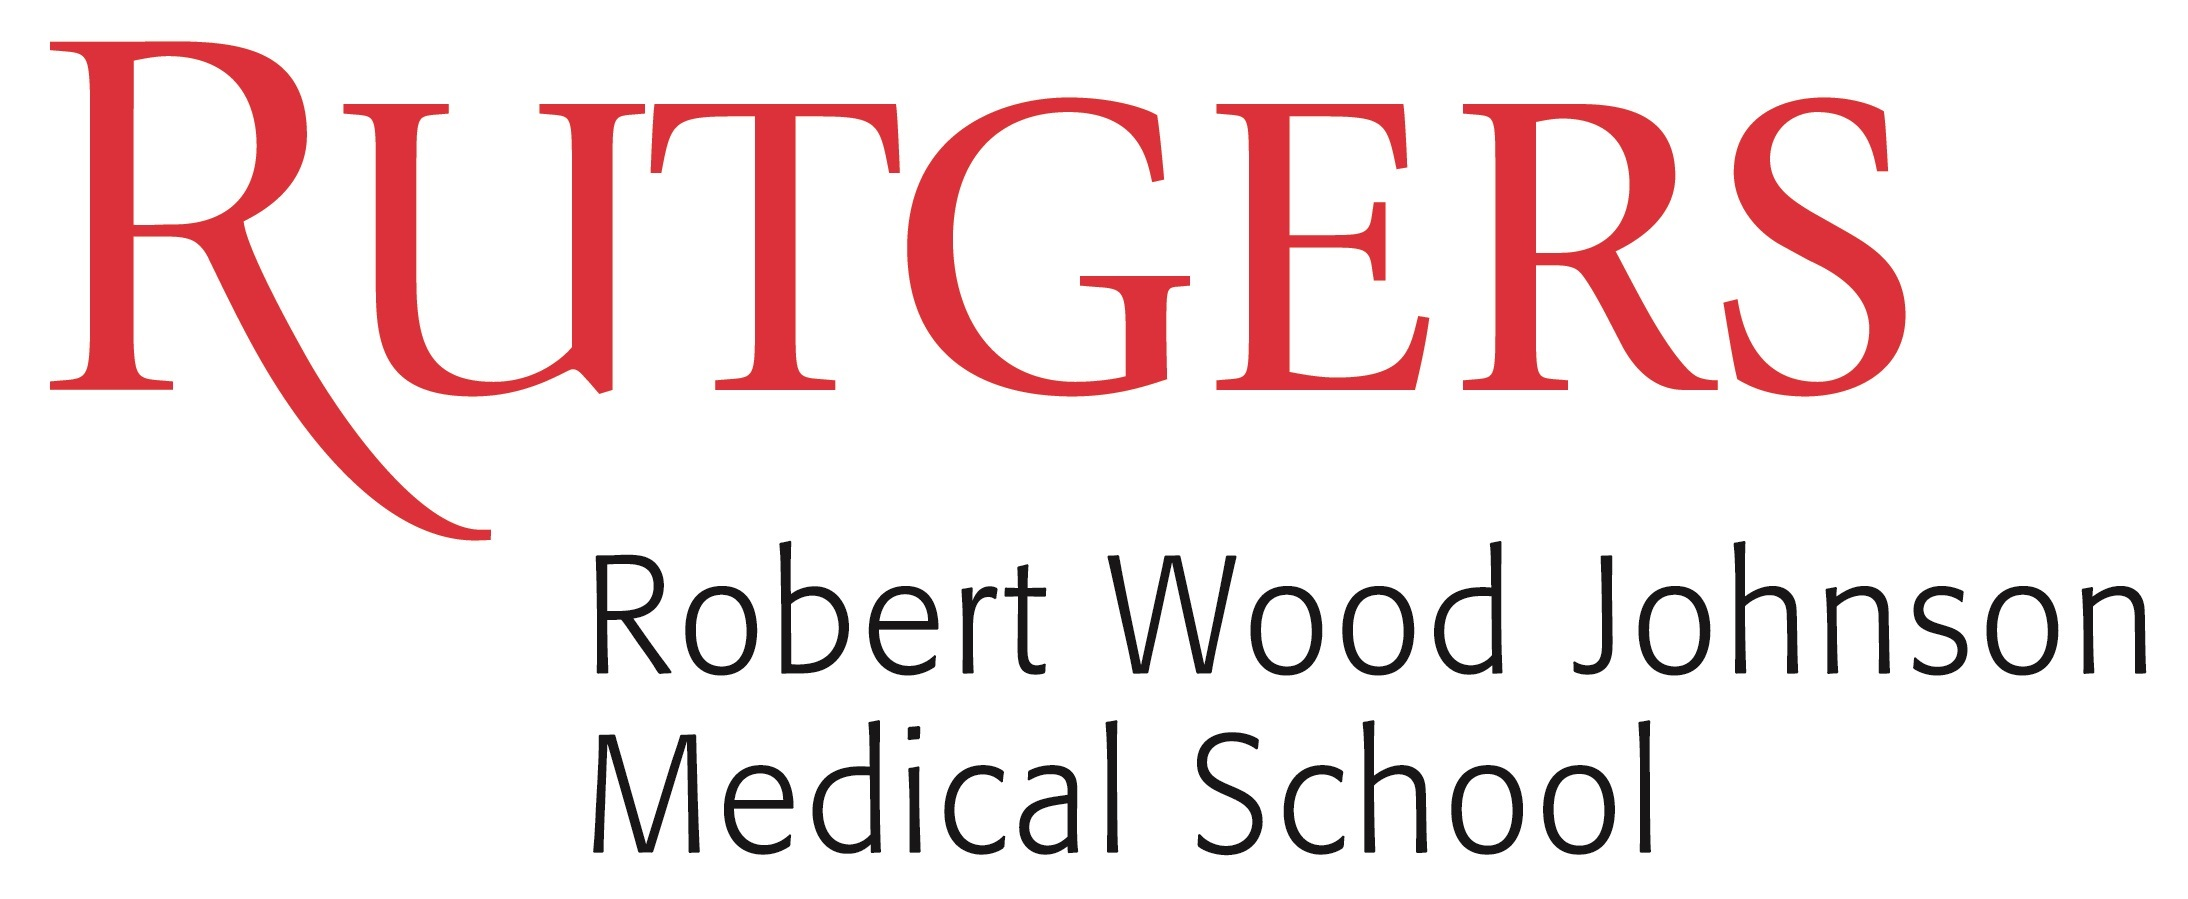 RUTGERS RWJ MEDICAL SCHOOL